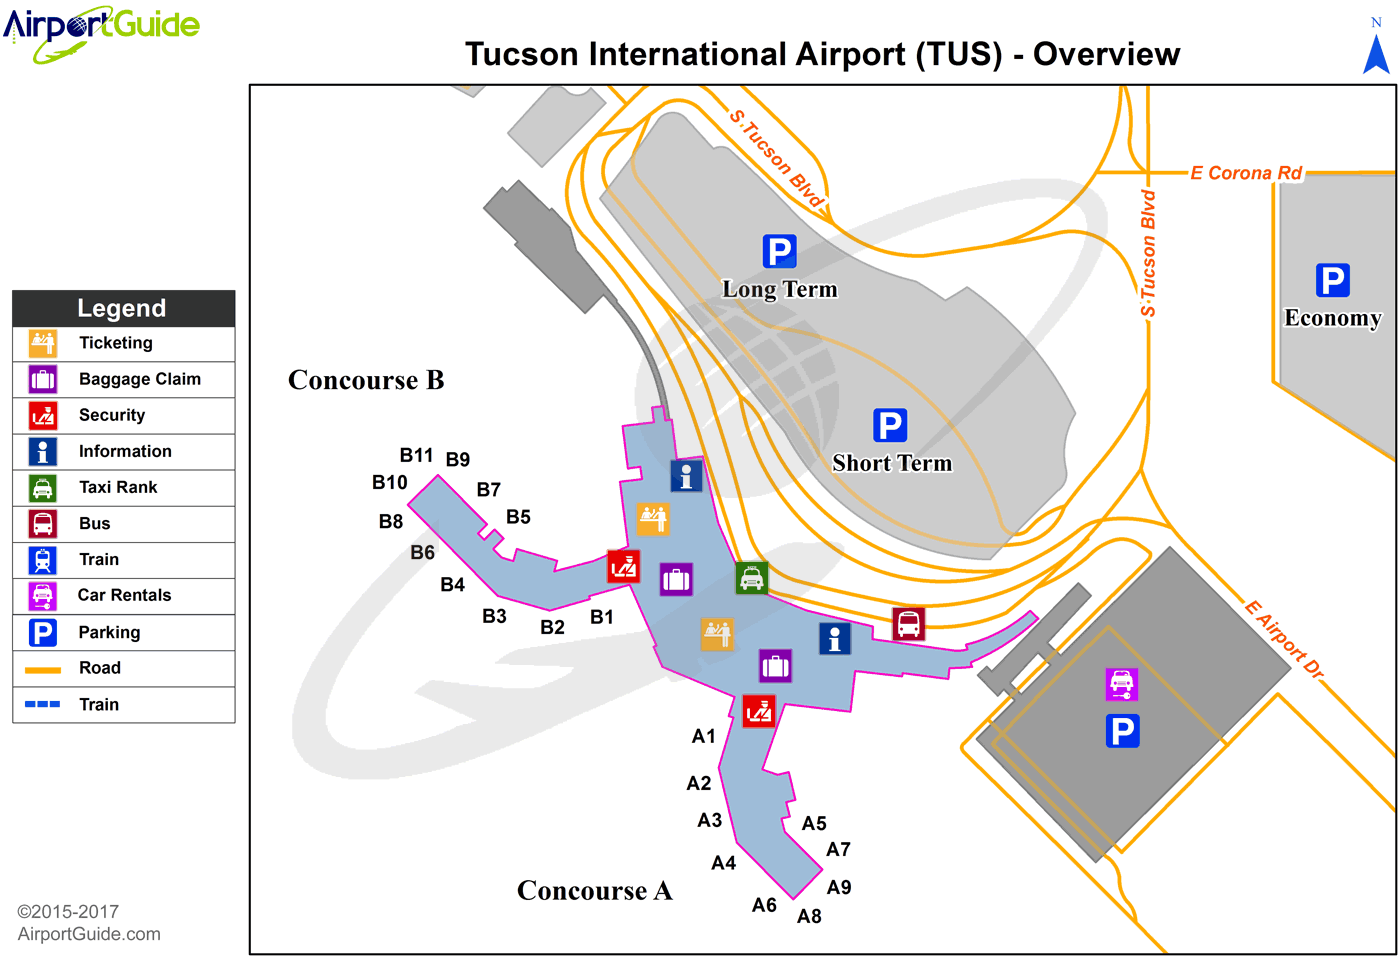 Tucson - Tucson International (TUS) Airport Terminal Map ... on foreclosure map, charter map, rehab map, golf map, exchange map, performance map, information map, marine map, government map, contact us map, wedding map,